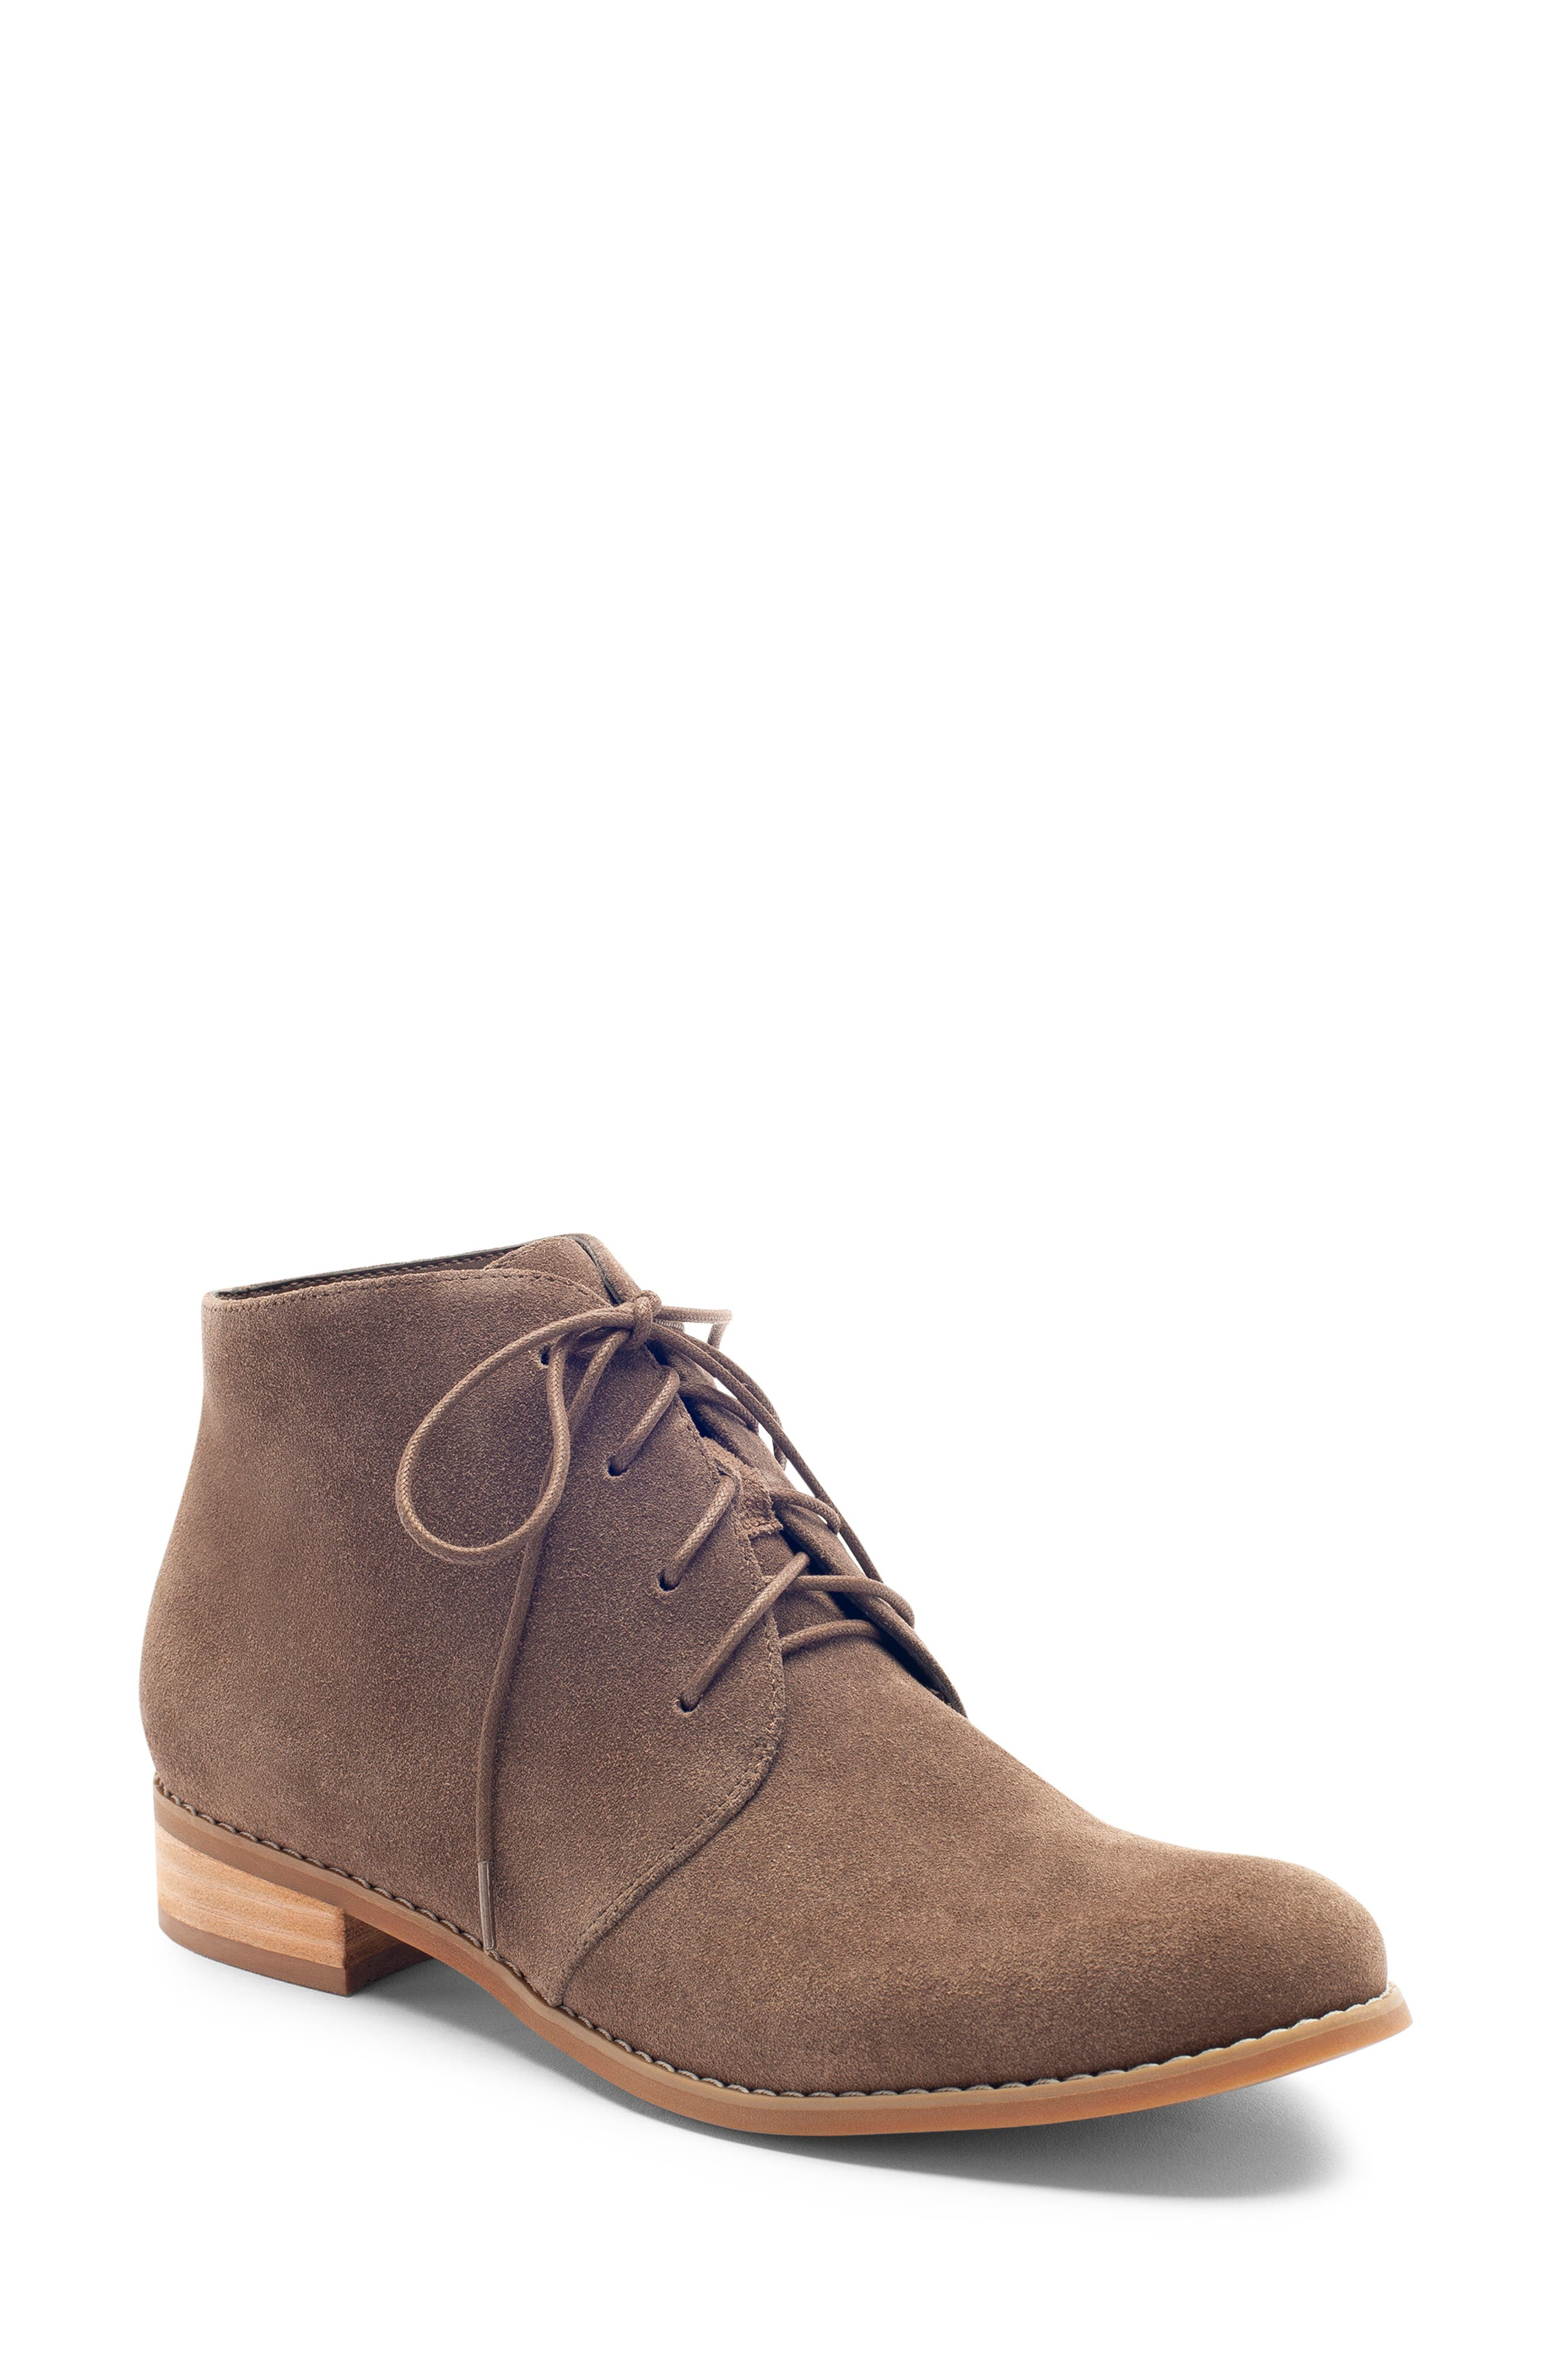 Rayann Waterproof Desert Boot,                             Main thumbnail 1, color,                             DARK TAUPE SUEDE